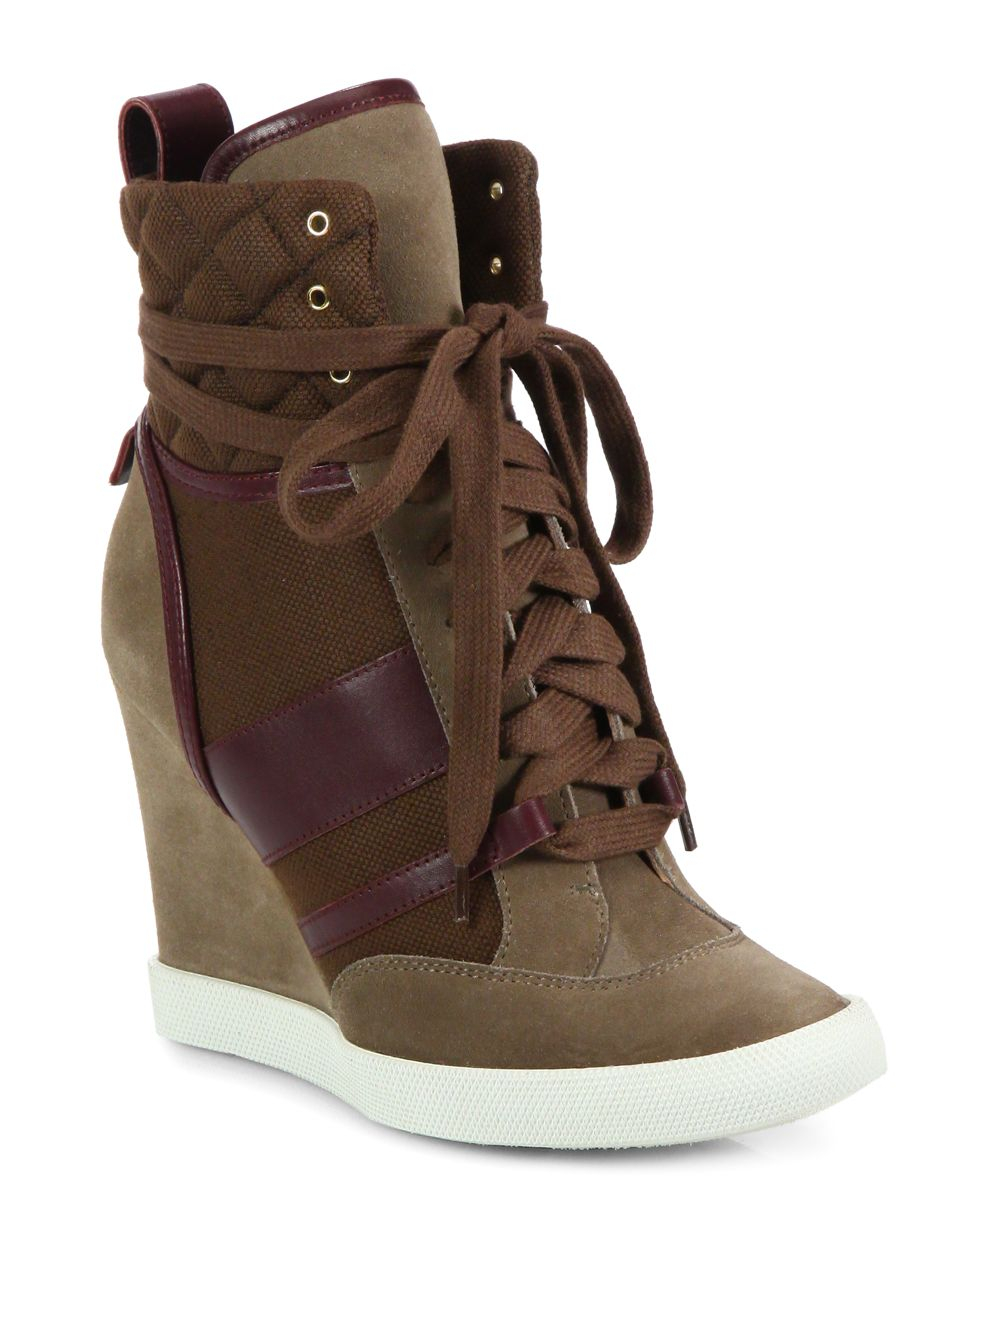 chlo suede lace up wedge sneakers in gray lyst. Black Bedroom Furniture Sets. Home Design Ideas